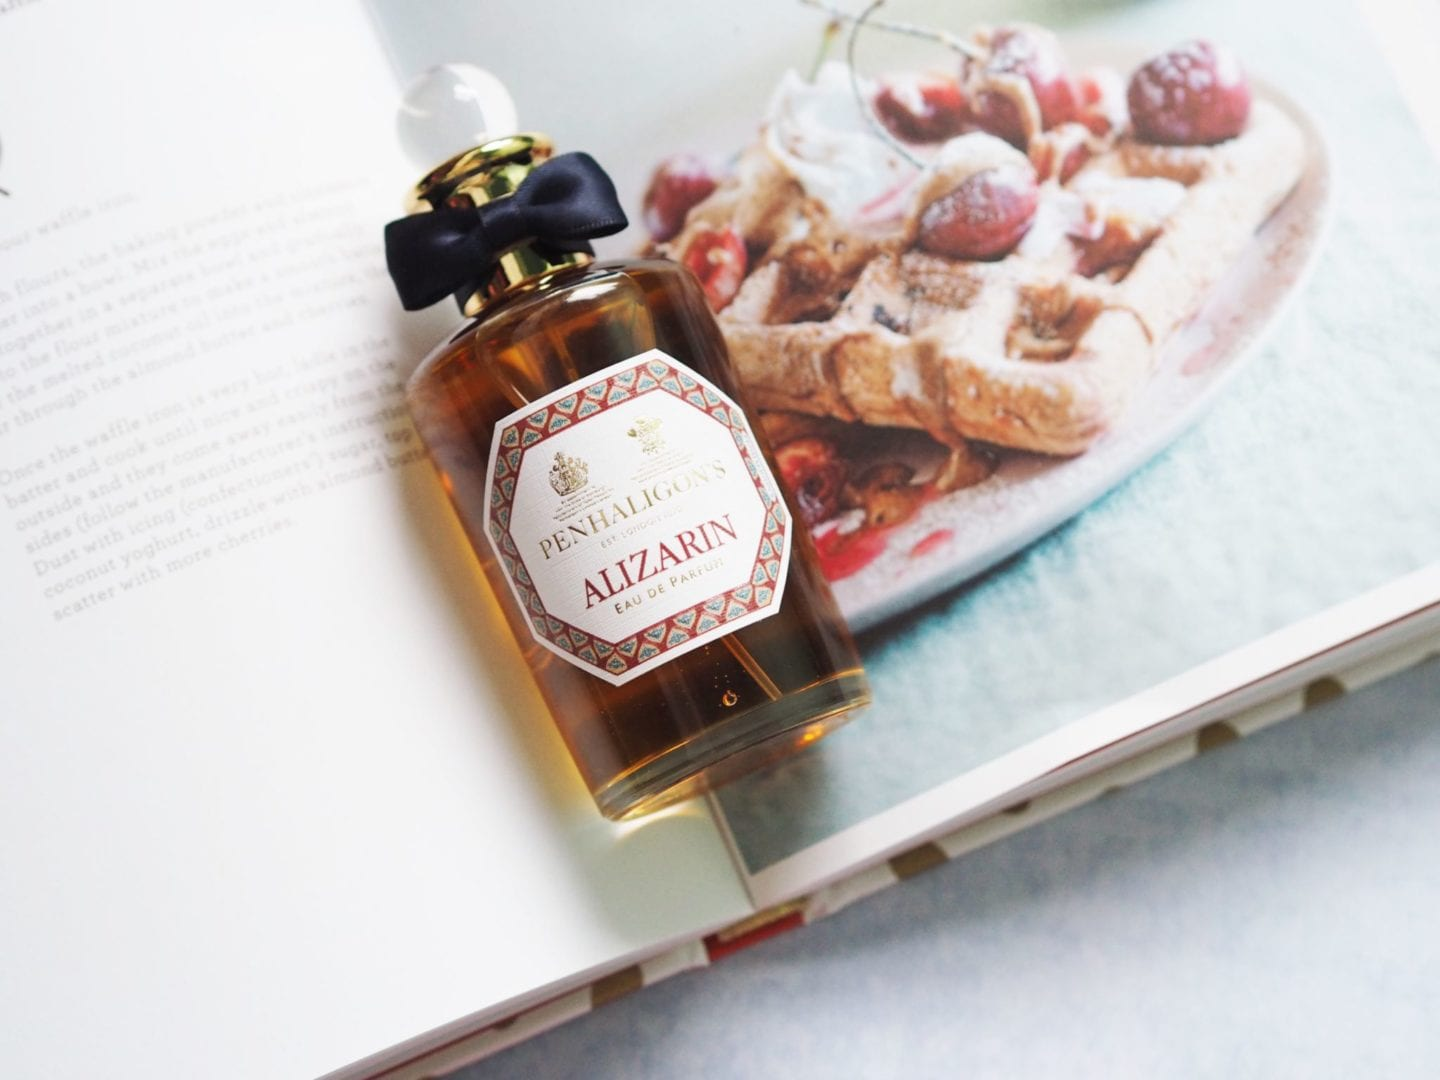 Penhaligon's 'Alizarin' perfume fragrance review.